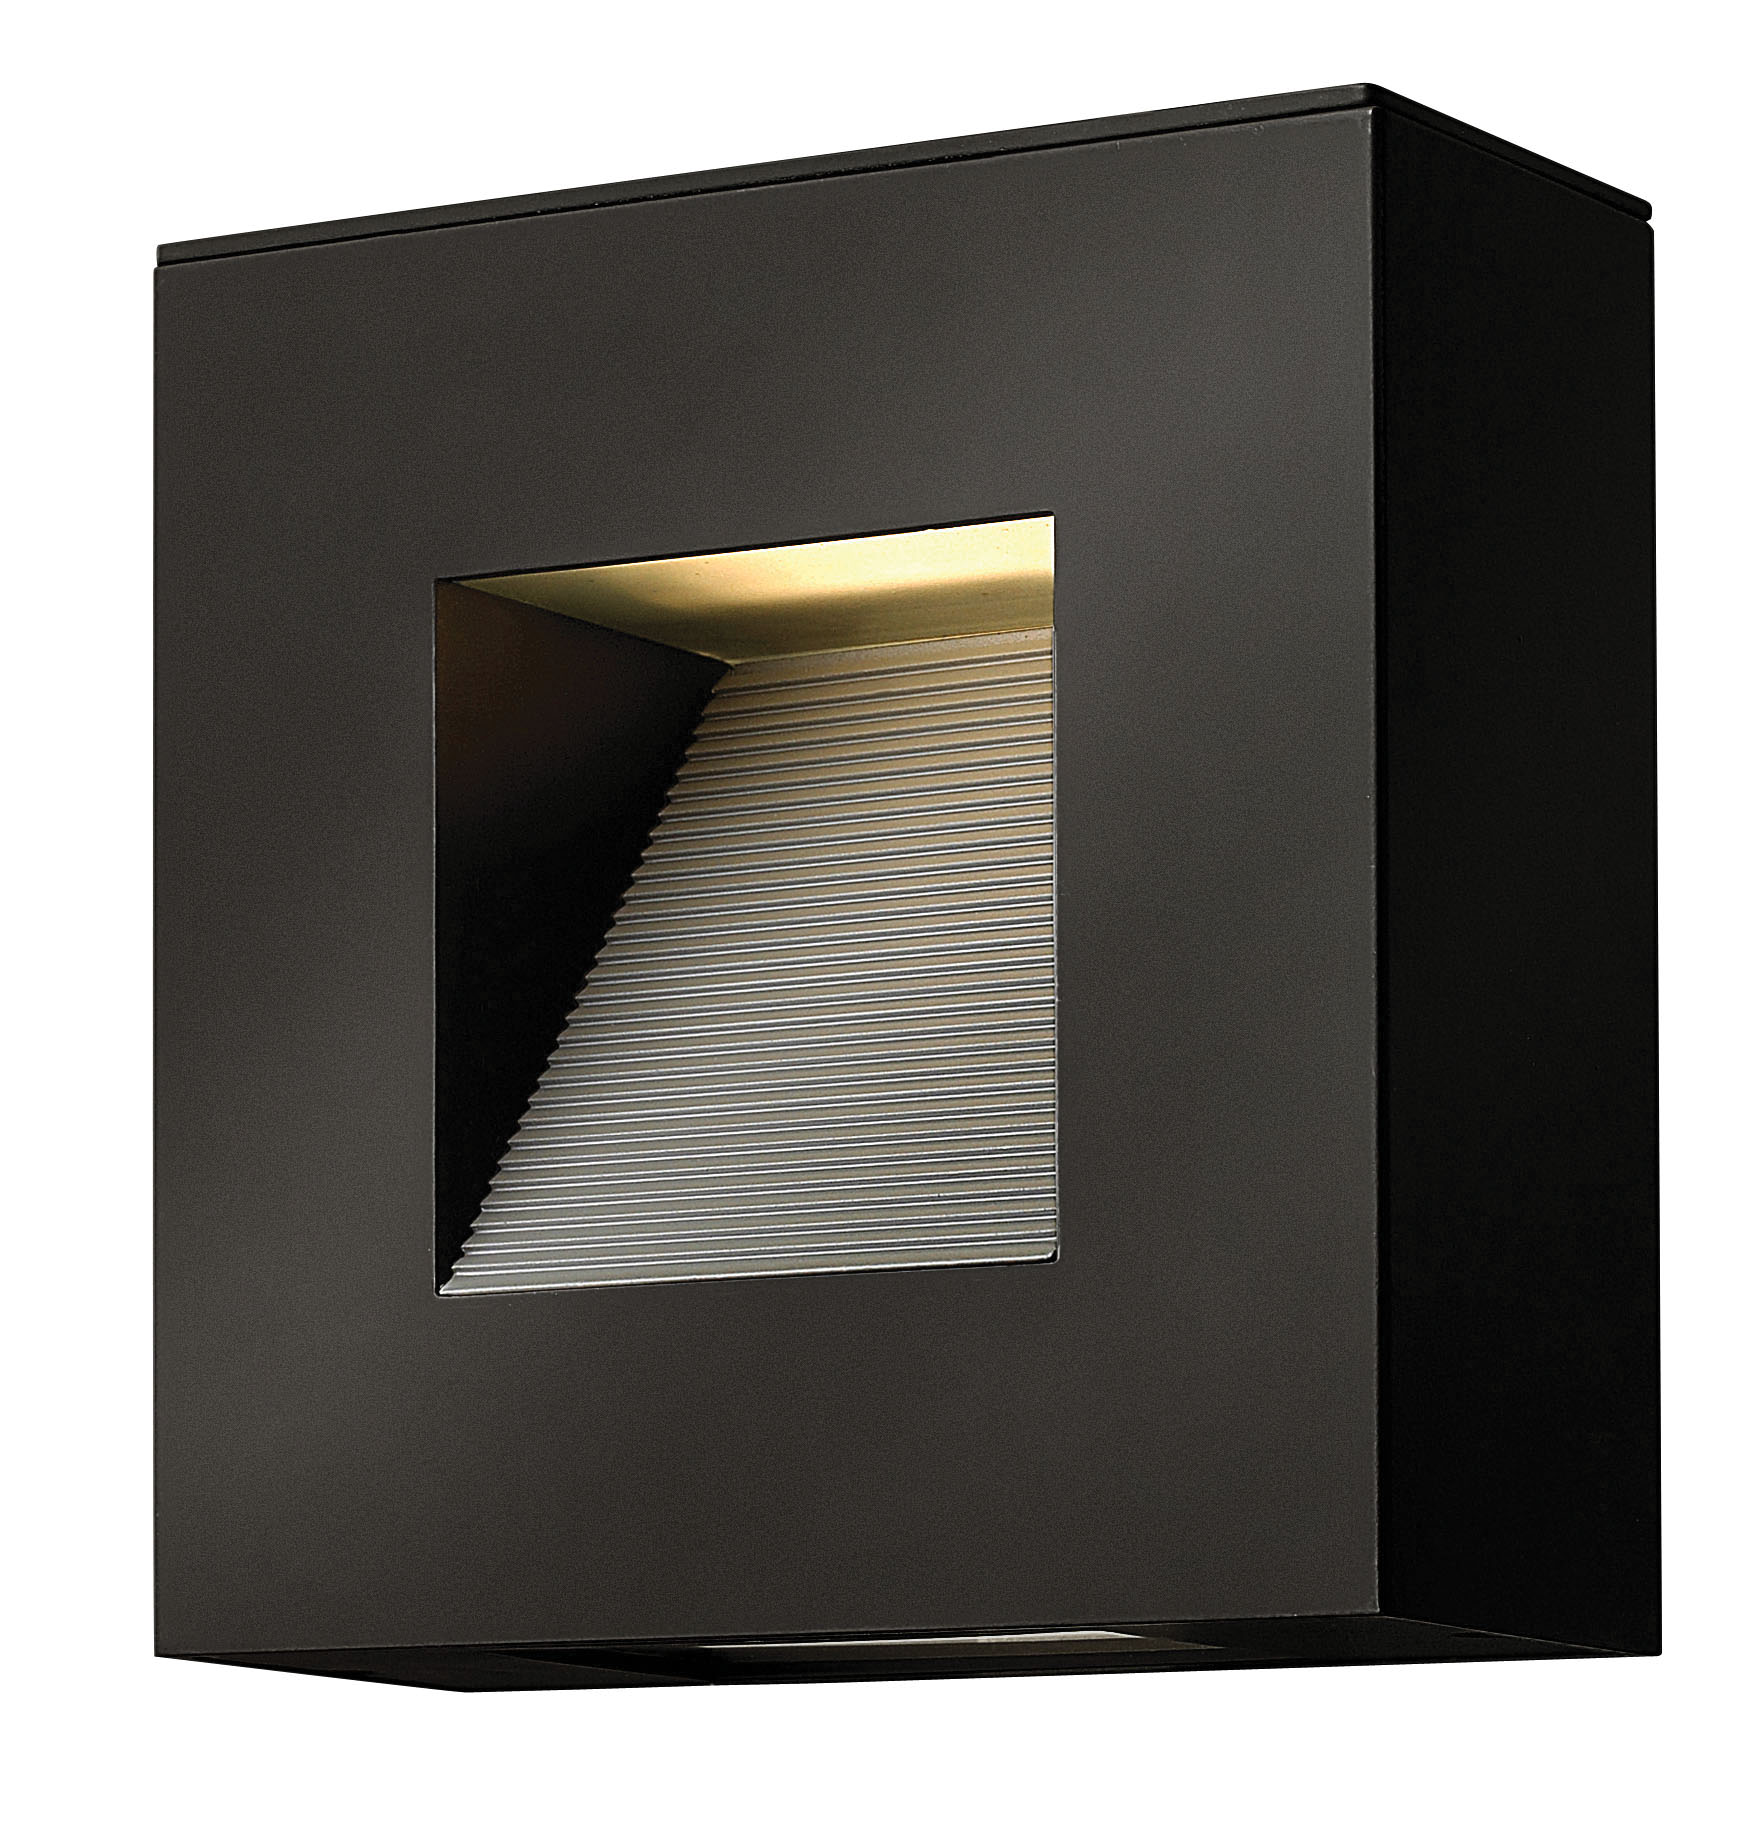 Luna square outdoor wall sconce by hinkley lighting 1647sk led